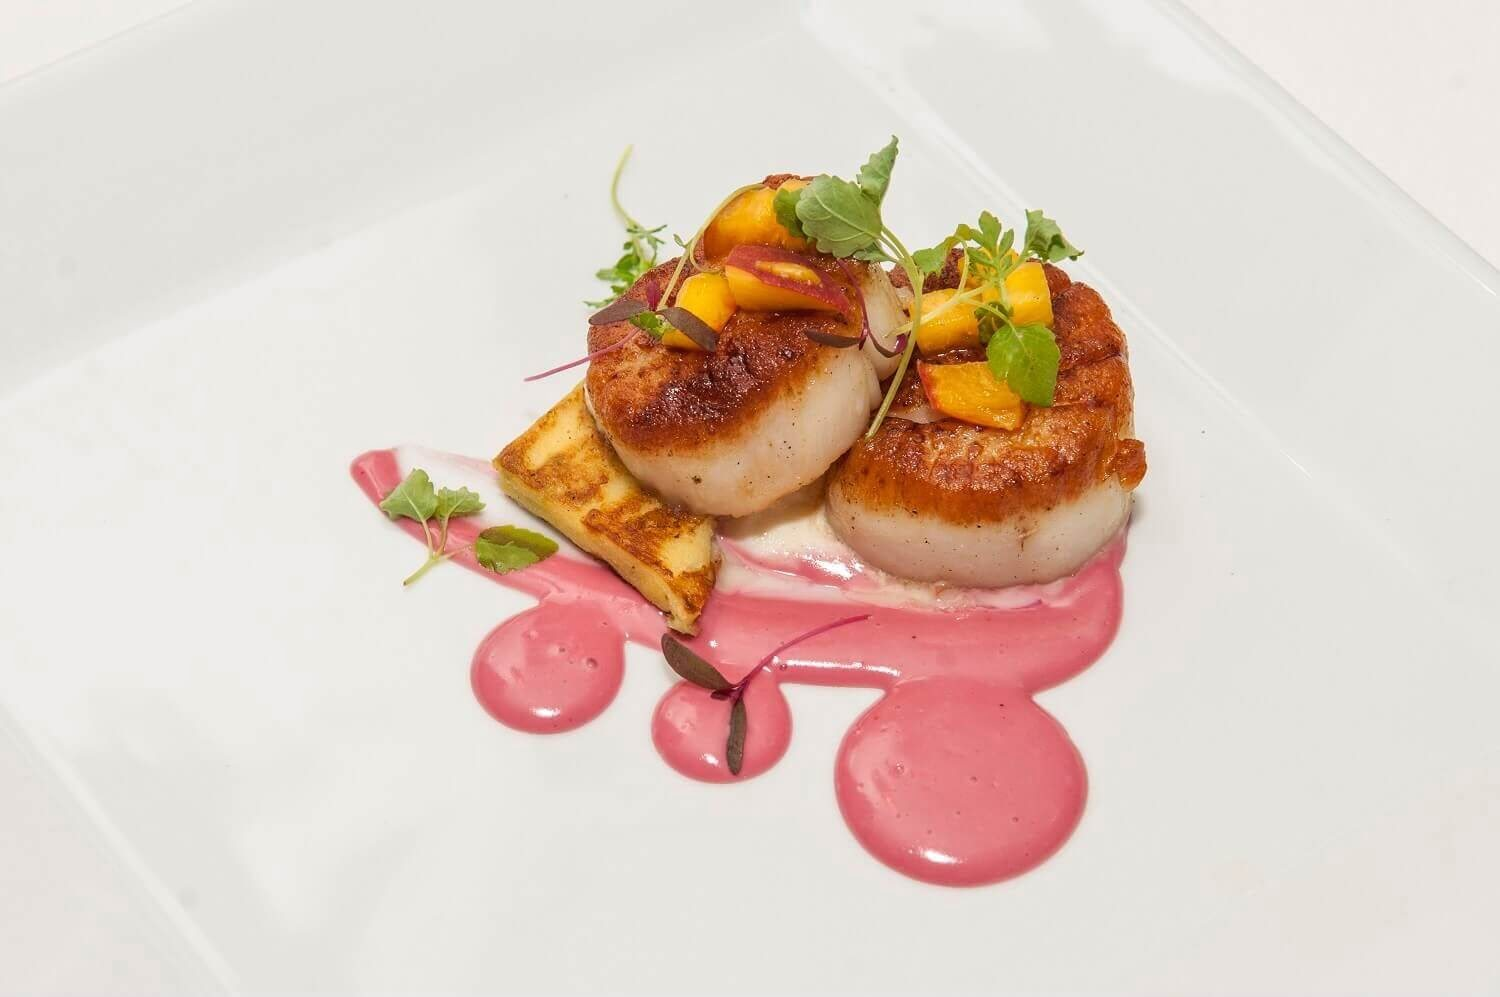 Pan Seared Diver Scallop, Garlic Scape Panisse, Lemon Ricotta, Pickled Peaches, Micro Citrus Greens, Beet Aioli